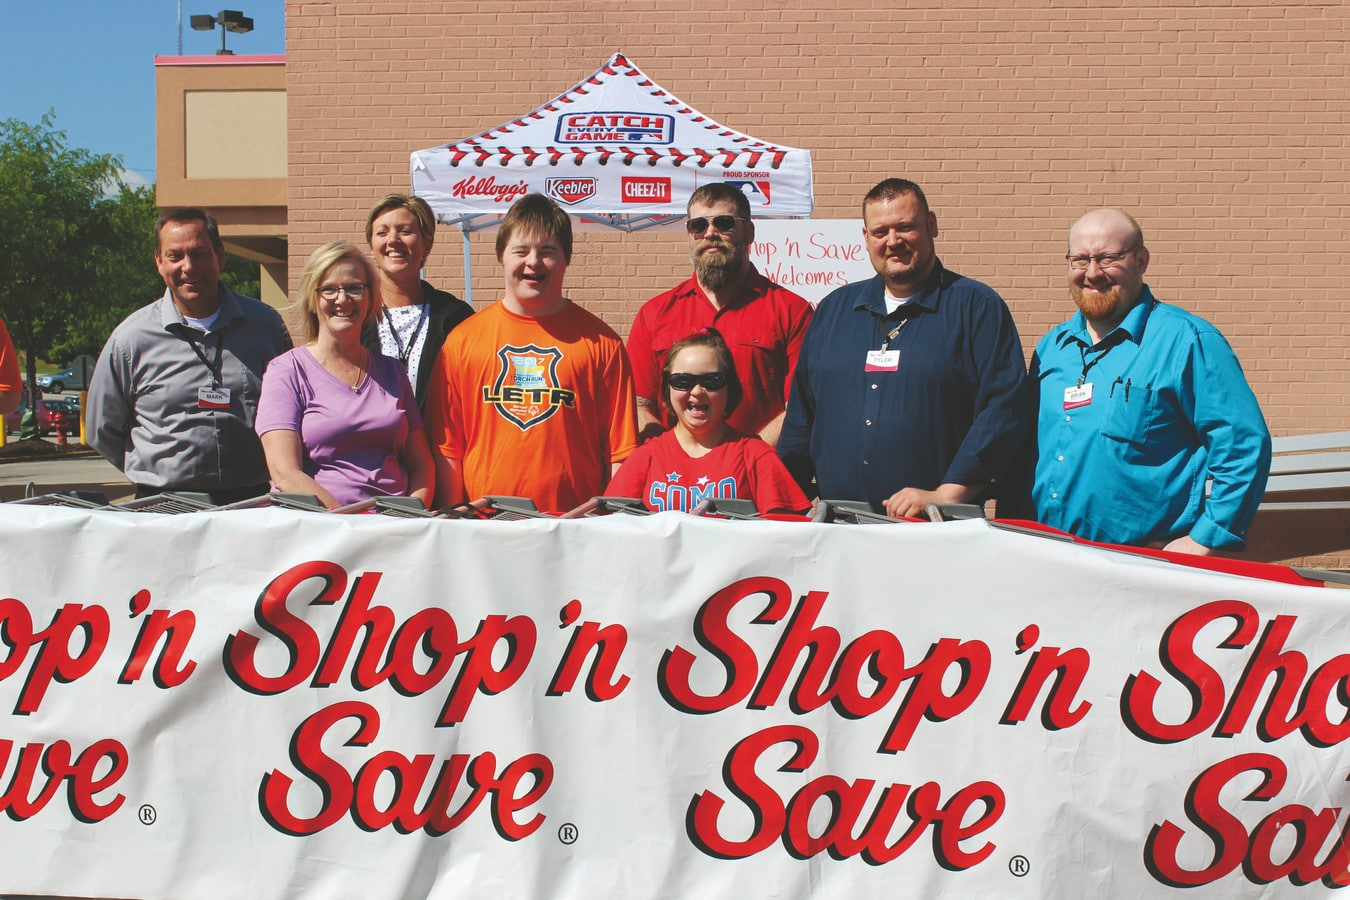 Group smiles and poses behind a Shop'n Save banner